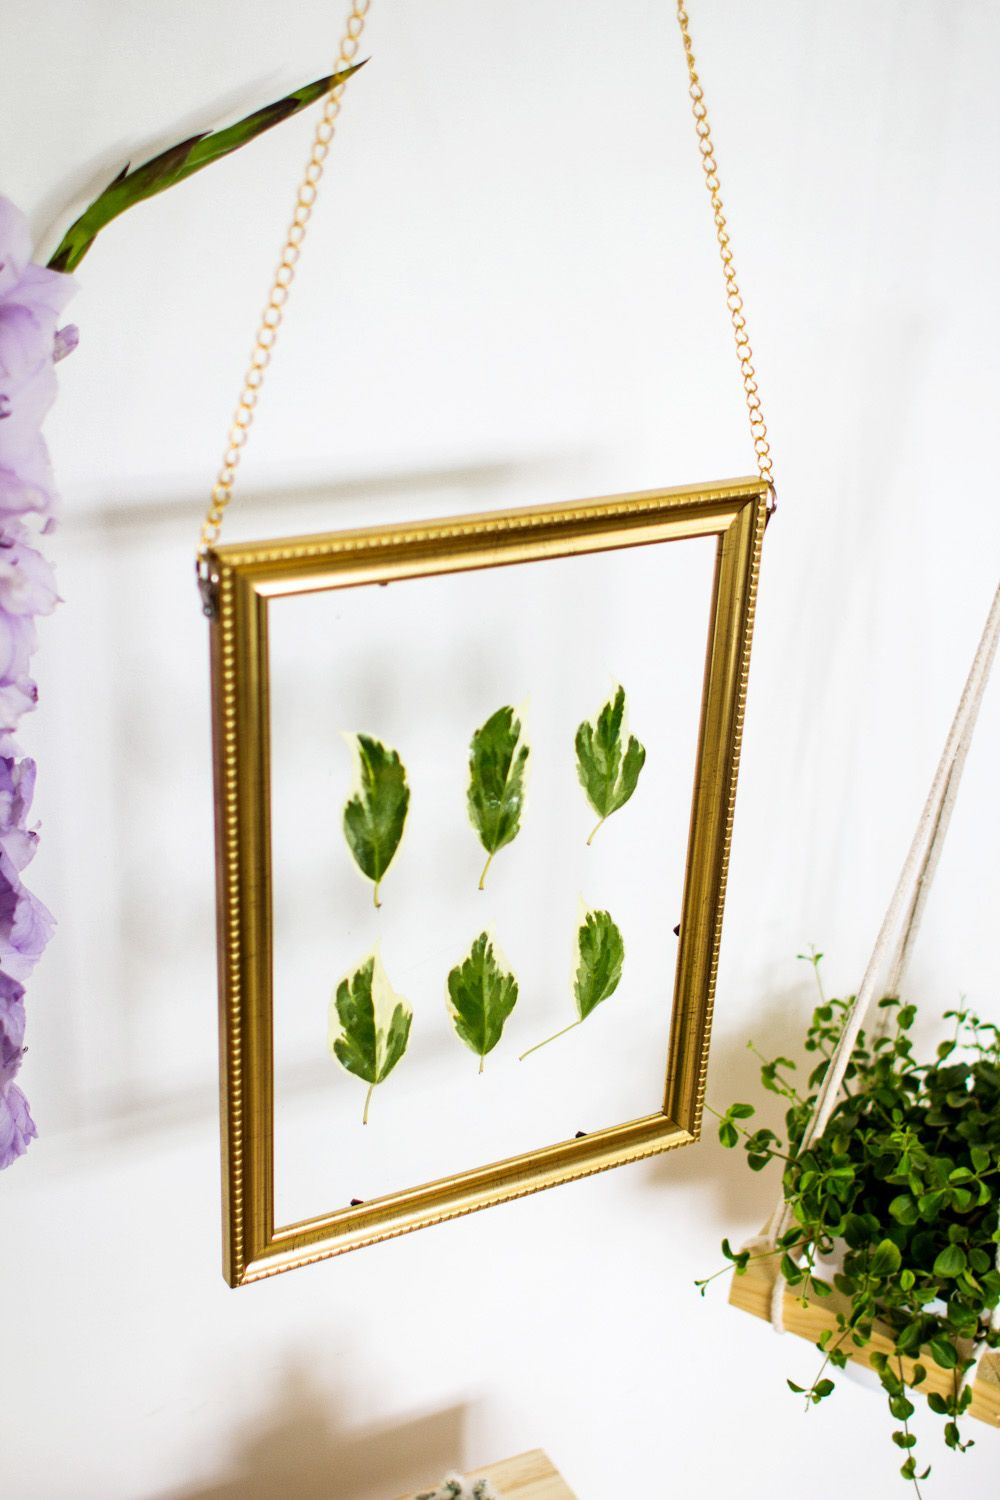 DIY Hanging Gold Frame Leaf Art Up